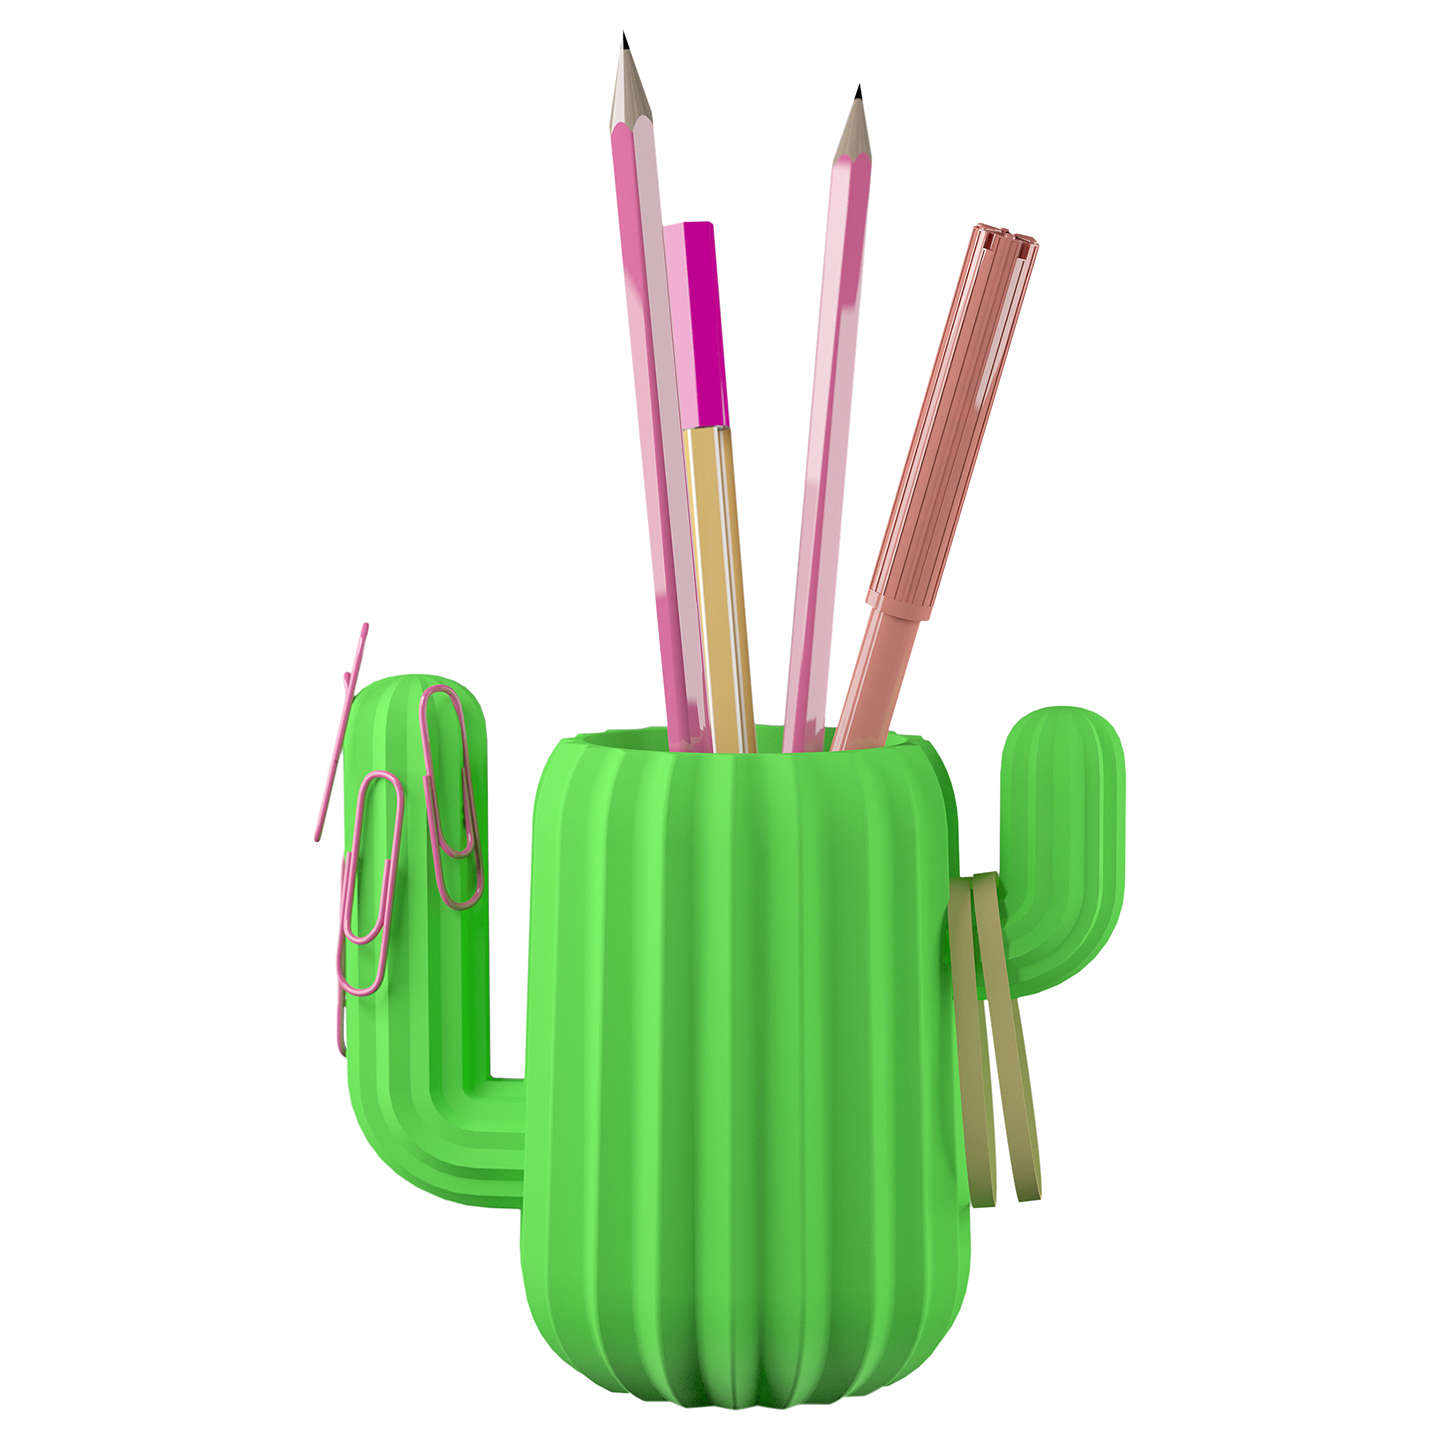 BuyMustard Cactus Pencil Pot Online at johnlewis.com